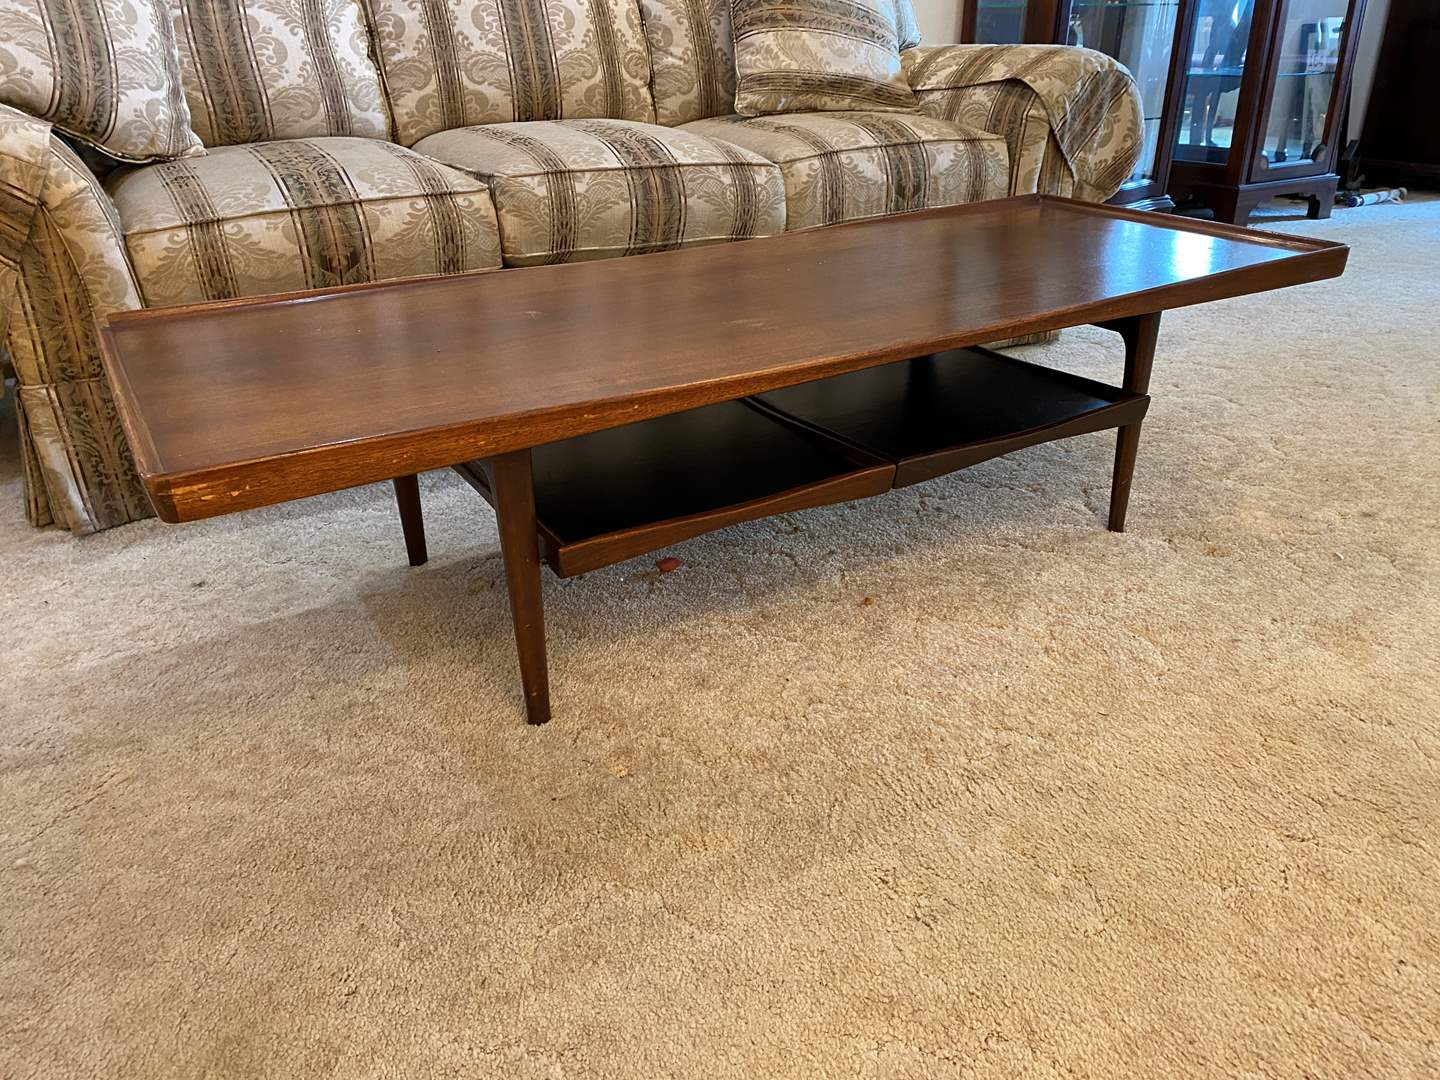 Lot # 196 - Vintage Mid-Century Danish Teak Coffee Table w/Removable Trays (main image)